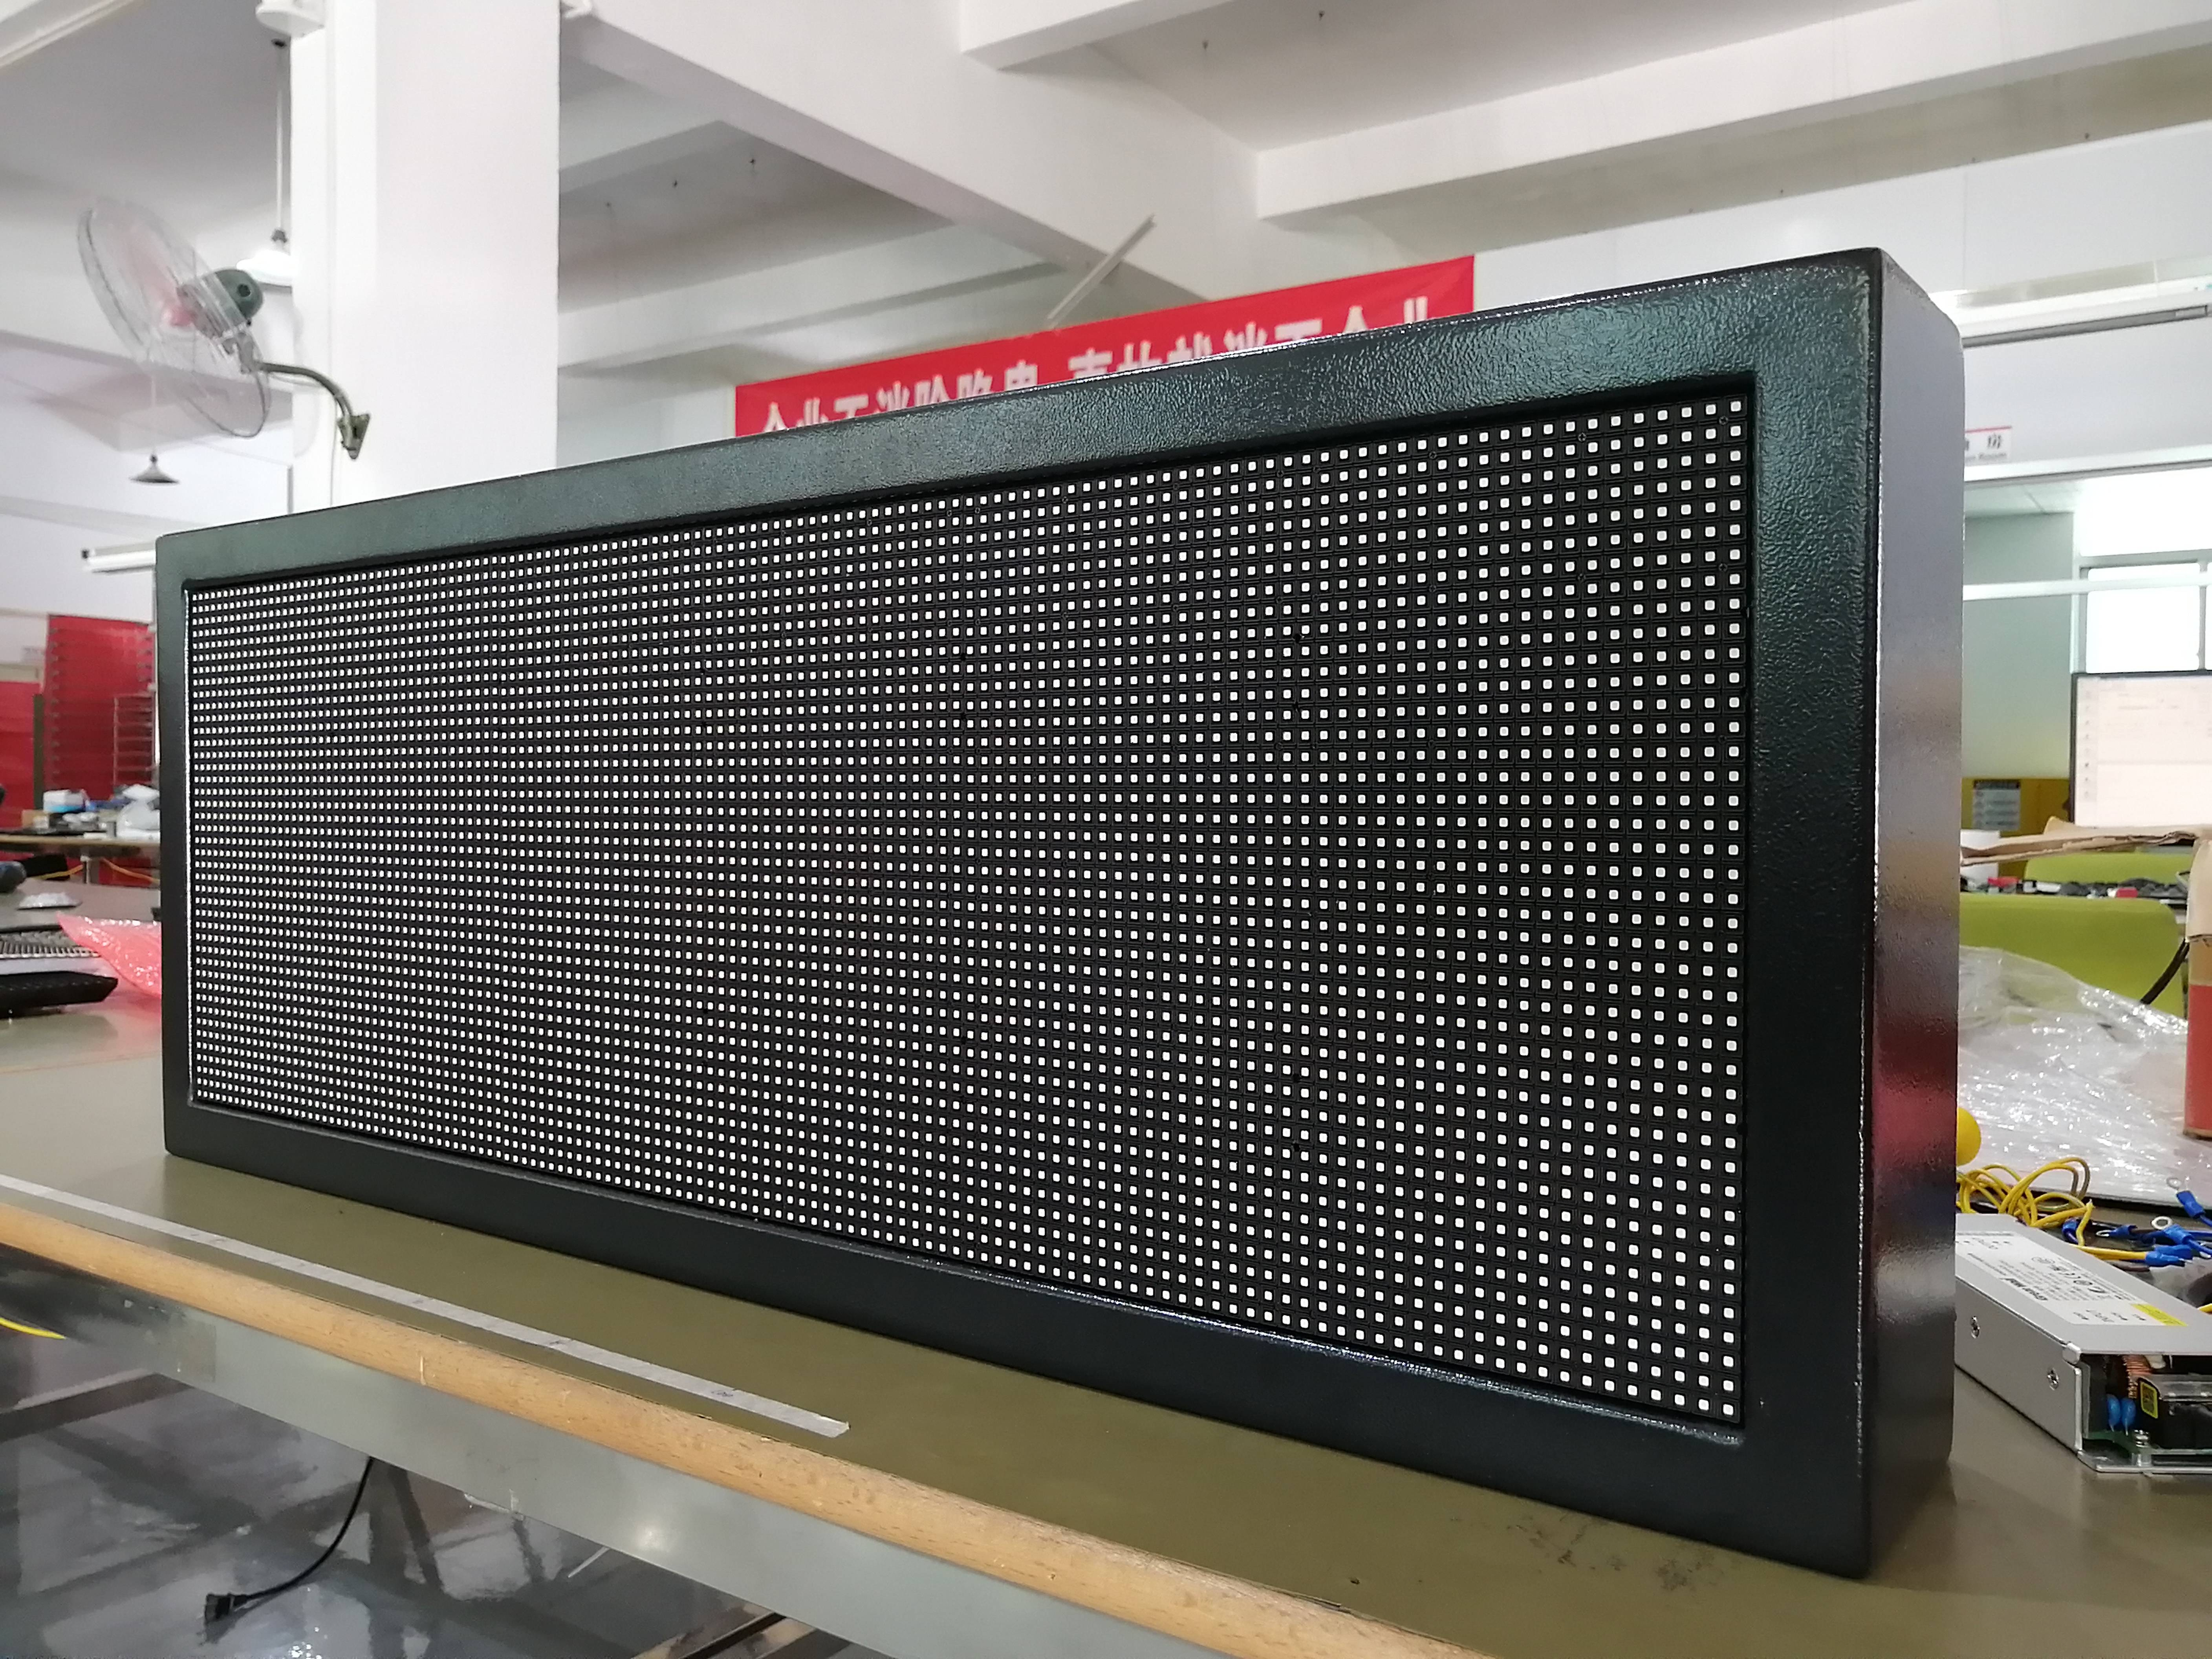 2020 AeroV LED Message Screen